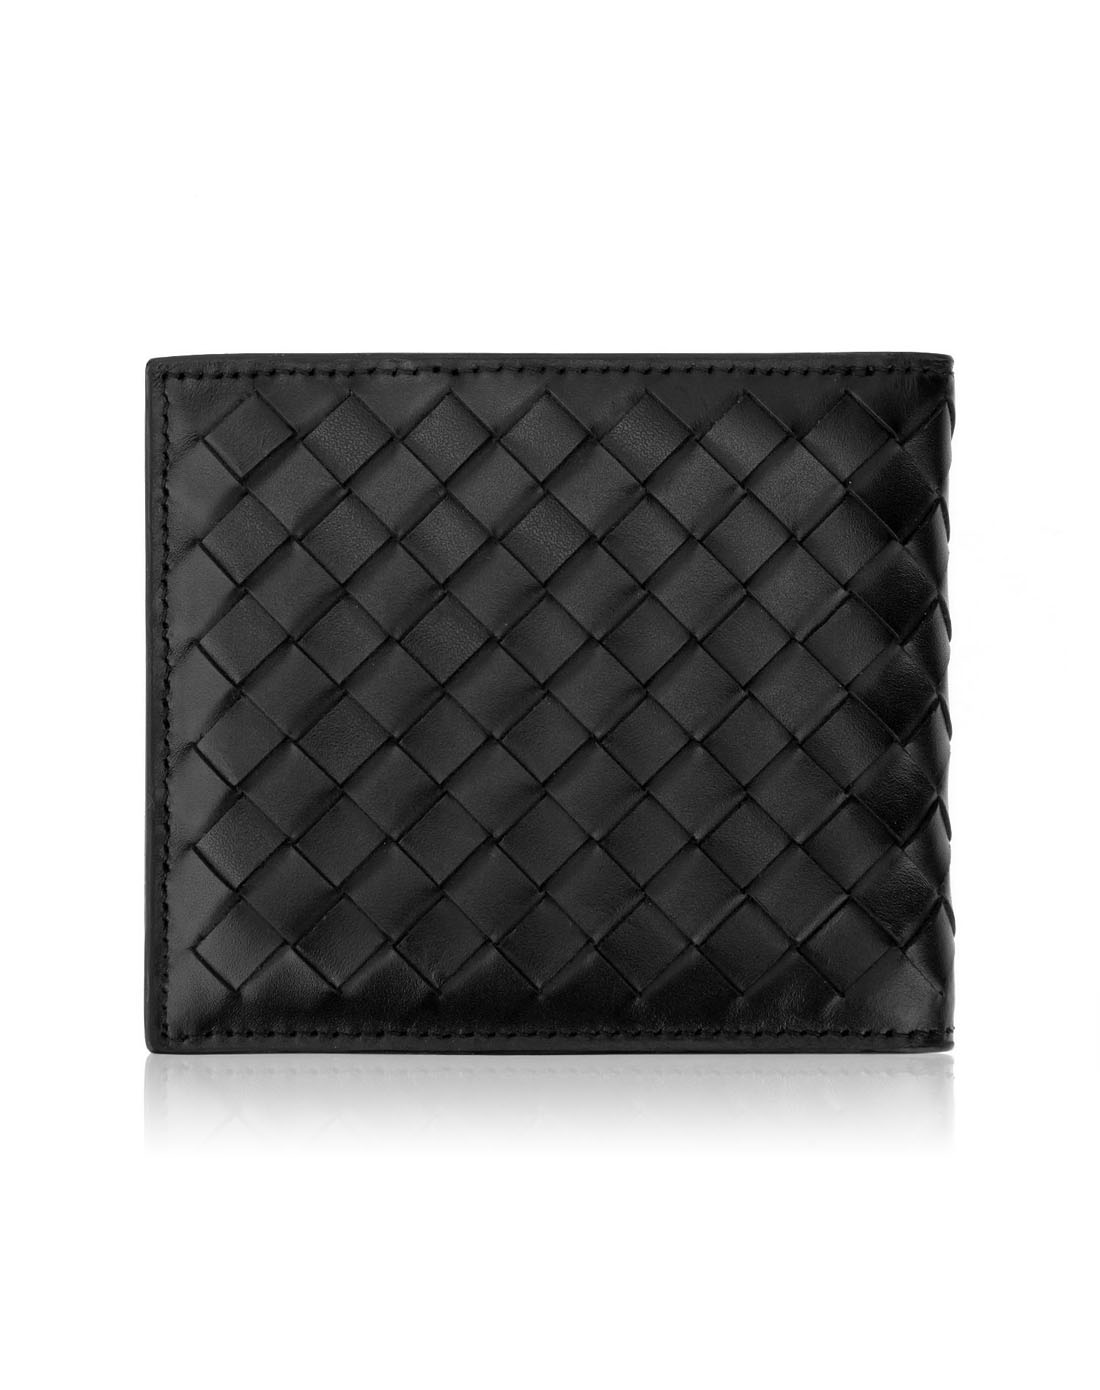 Bell 2014 new handmade men's first layer of leather wallet cross section M3-0076-1-H-53280